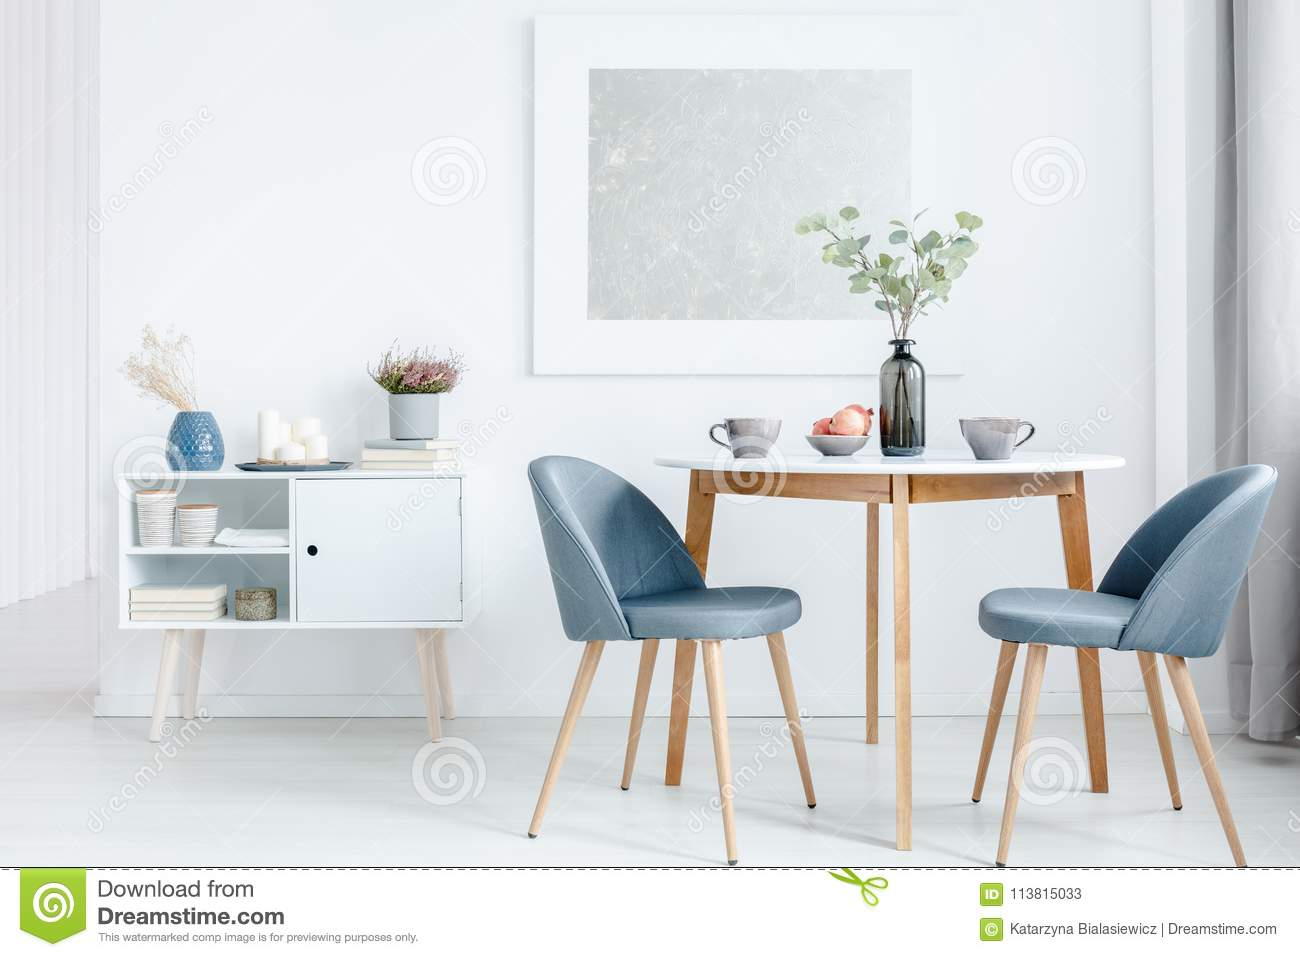 Prime Small Dining Table With Chairs Stock Image Image Of Legs Unemploymentrelief Wooden Chair Designs For Living Room Unemploymentrelieforg